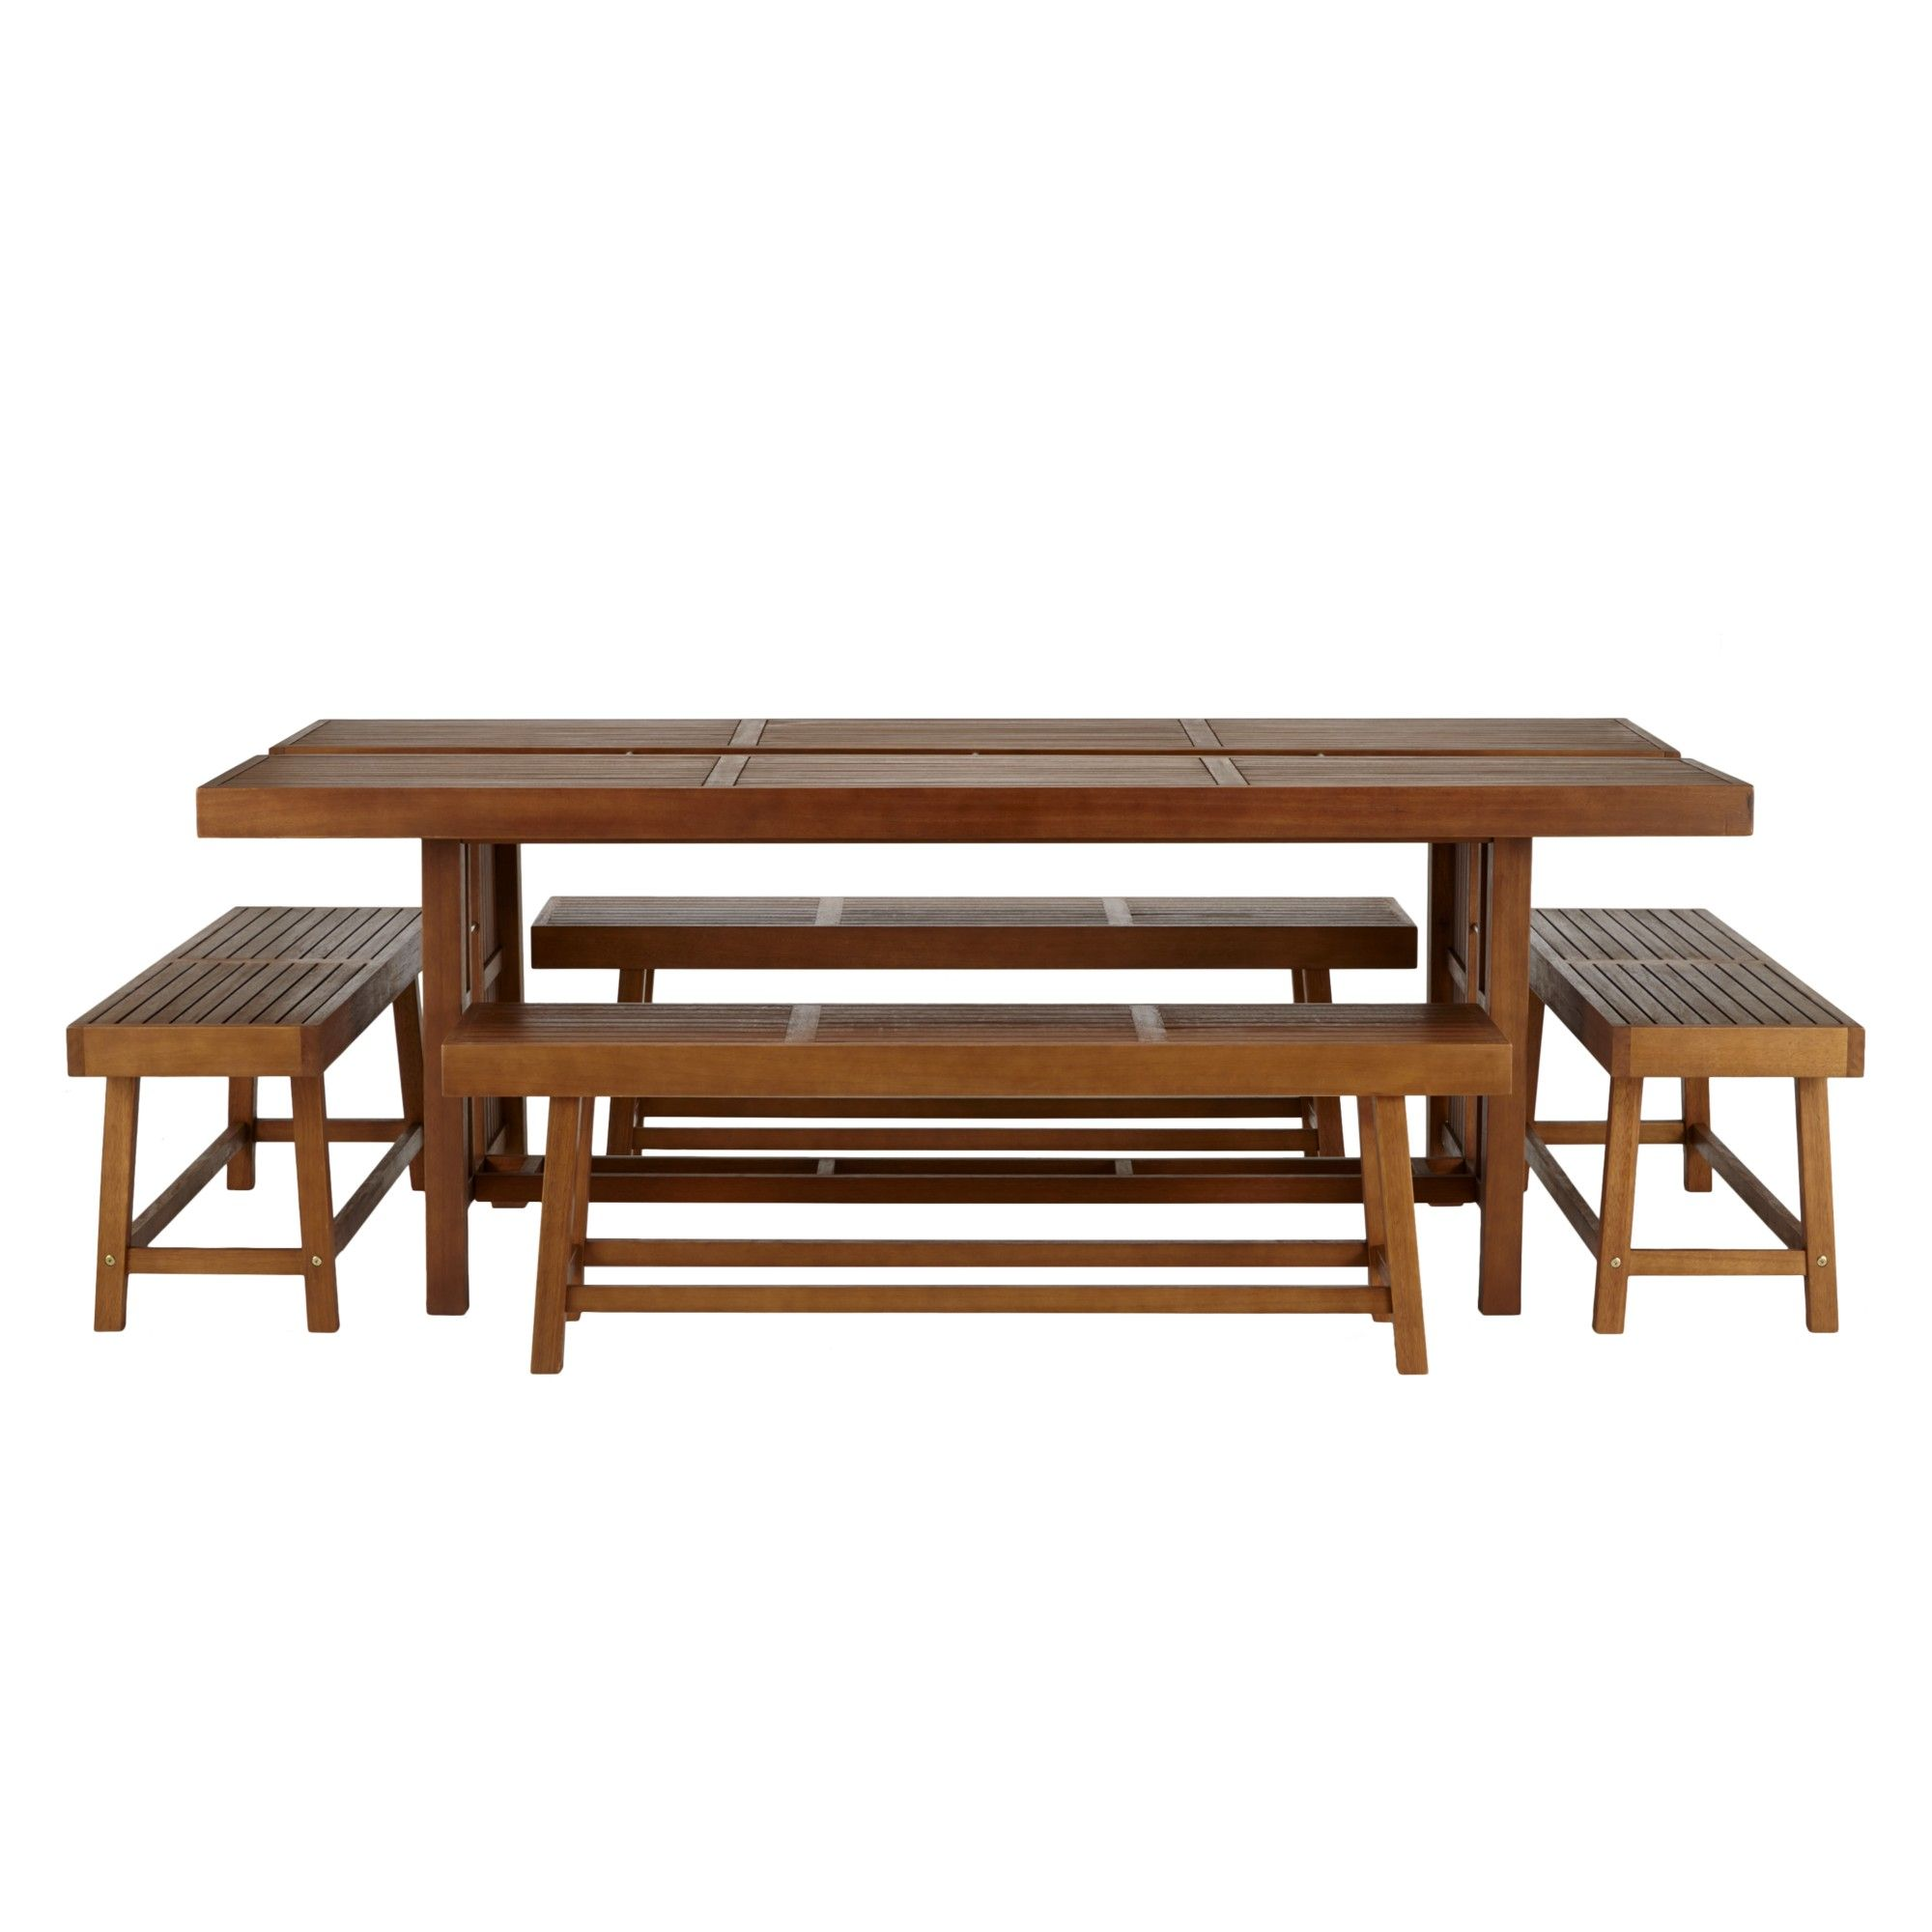 john lewis drift 8 seater outdoor dining table and 2 benches fsc